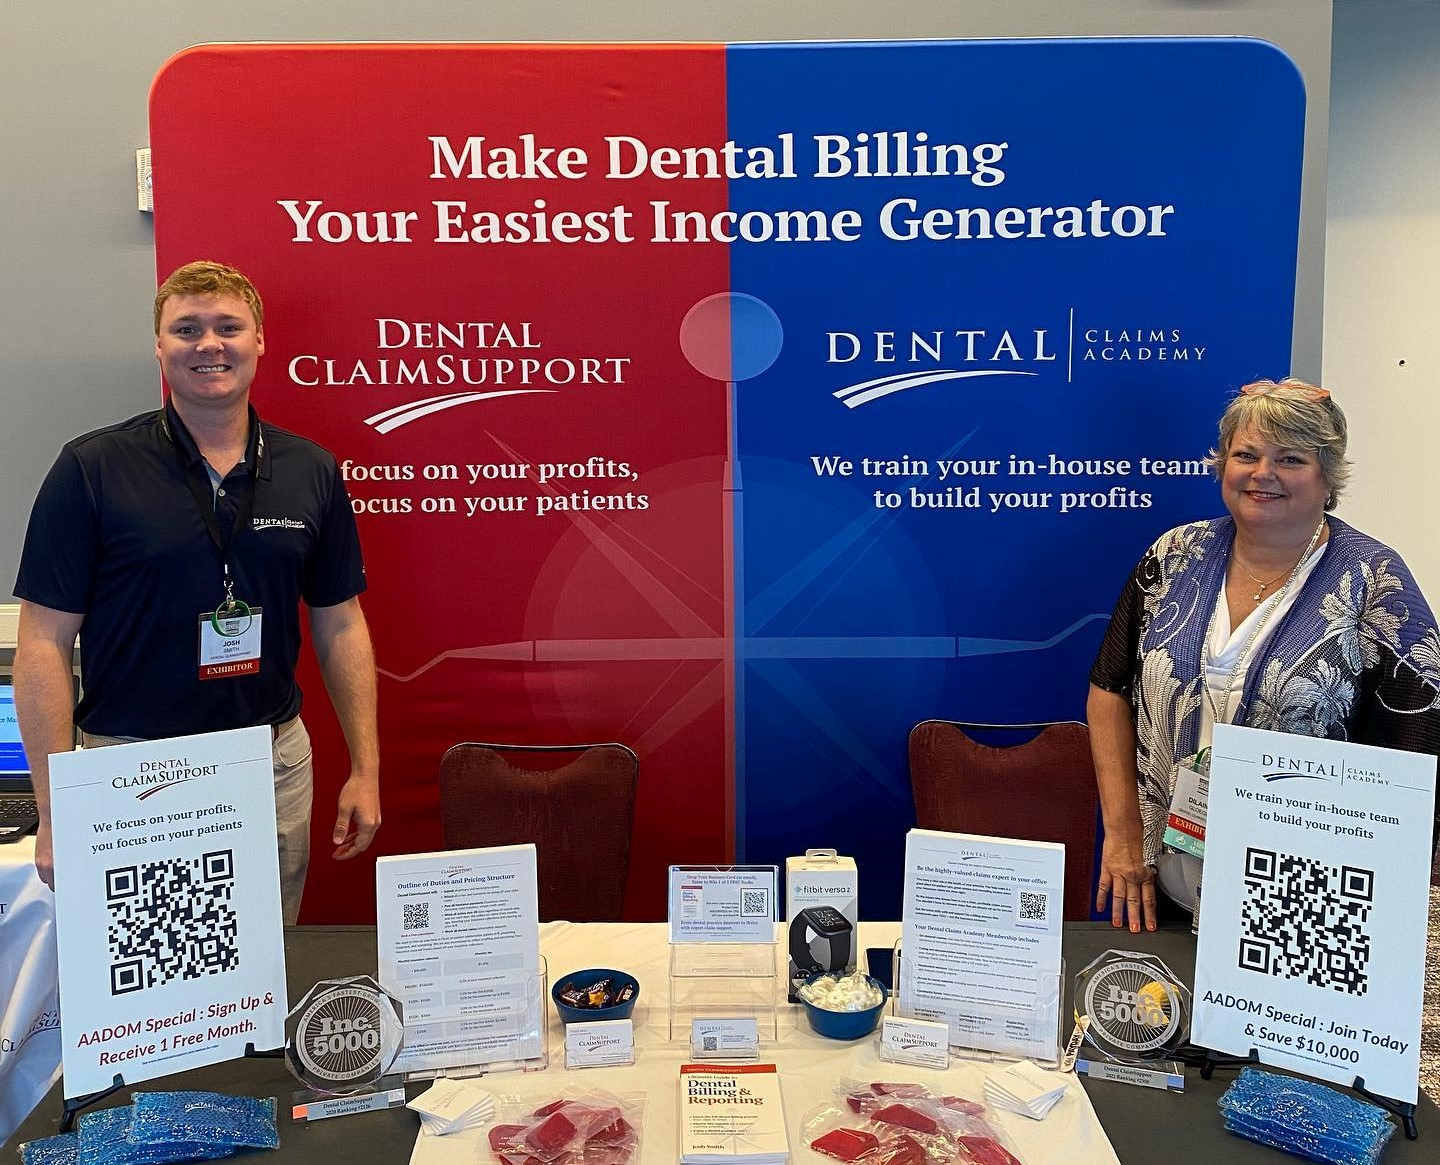 What did Dental ClaimSupport learn at the AADOM conference?